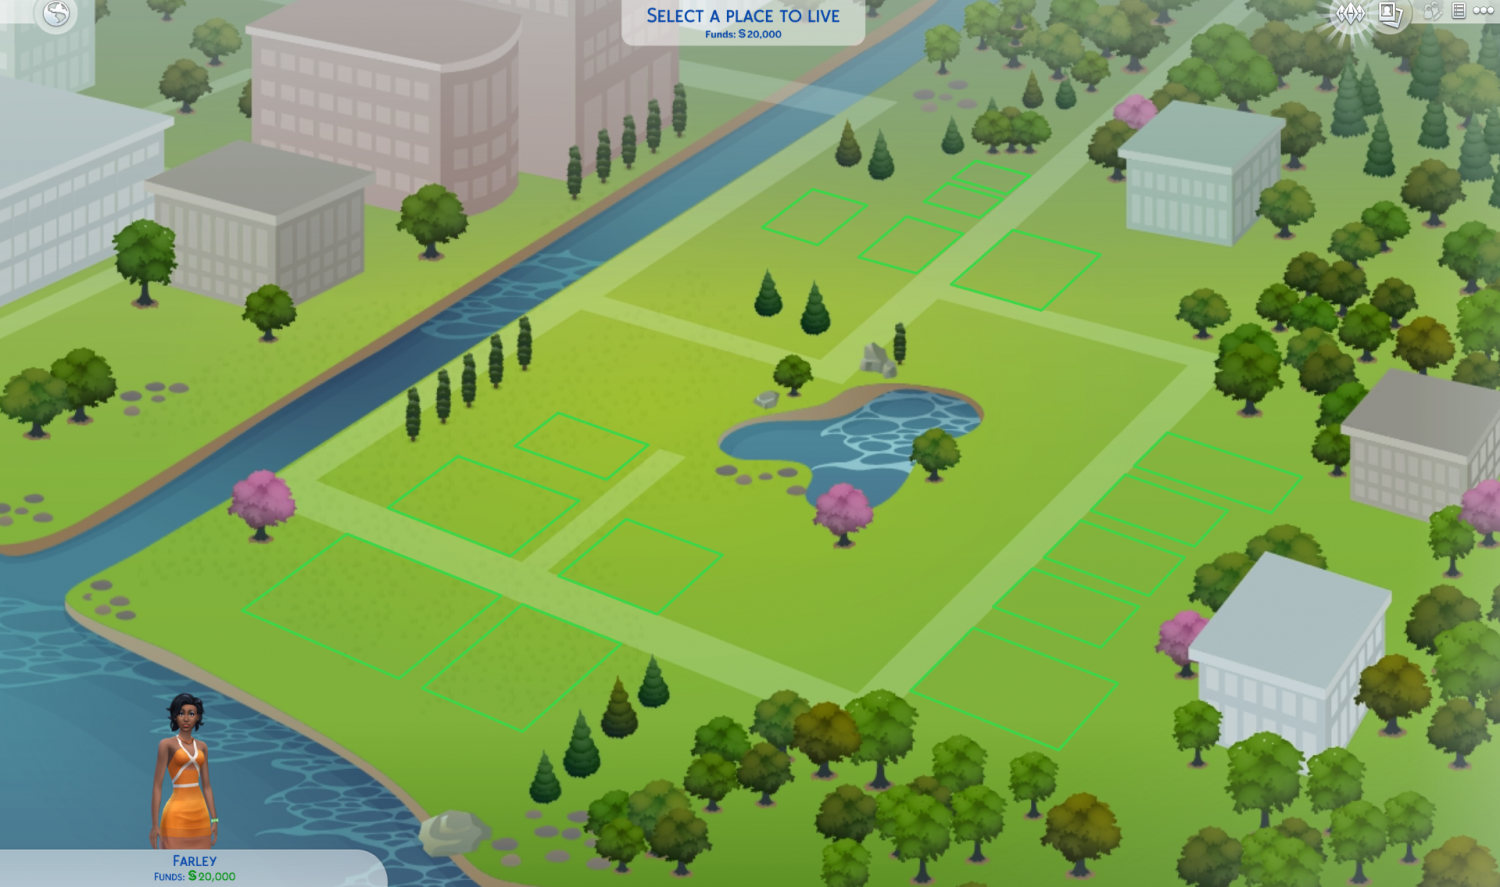 Newcrest_Map_Select_5896265